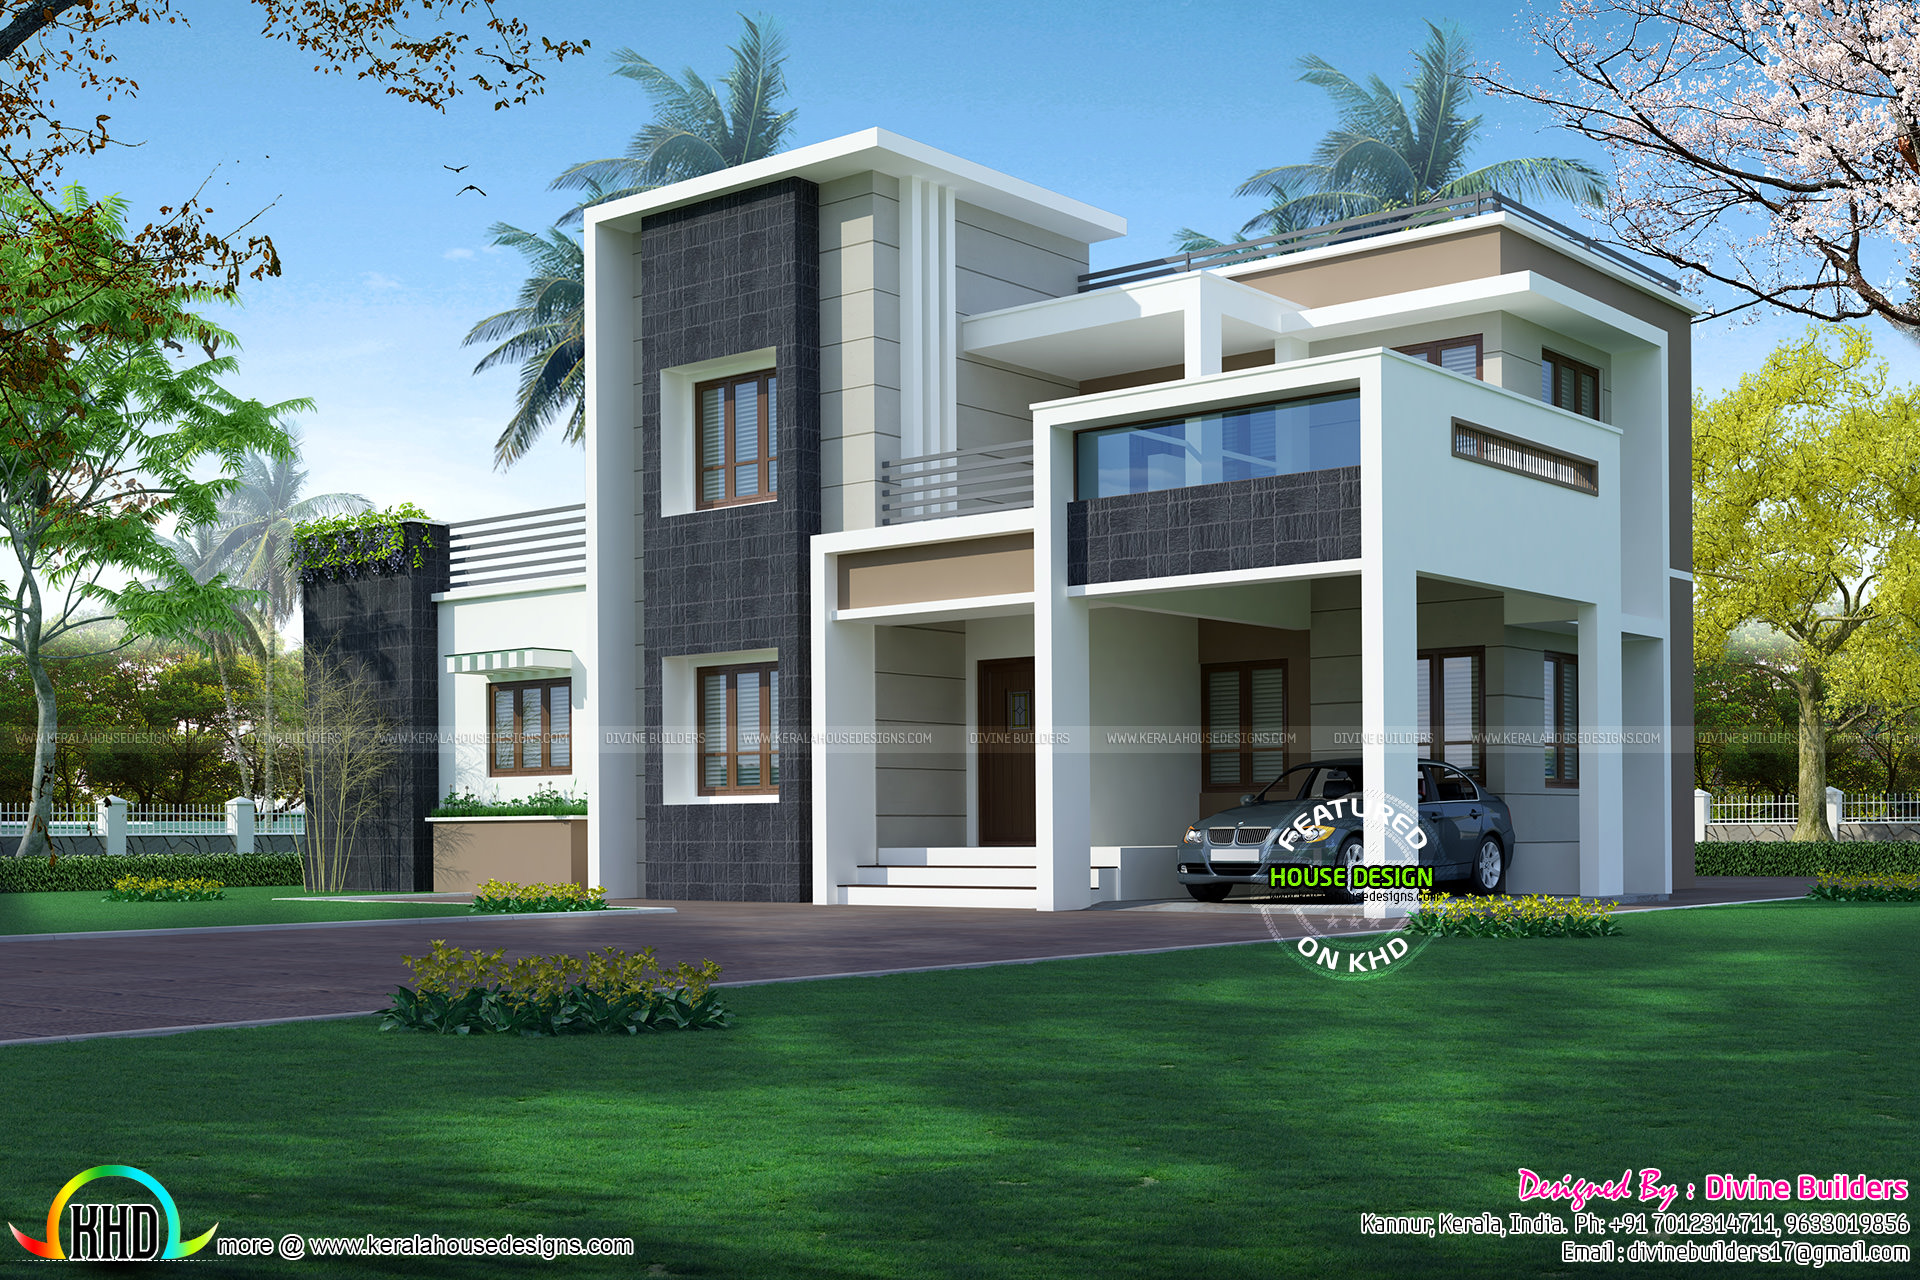 2276 sq-ft, 3 bedroom modern box style architecture ...